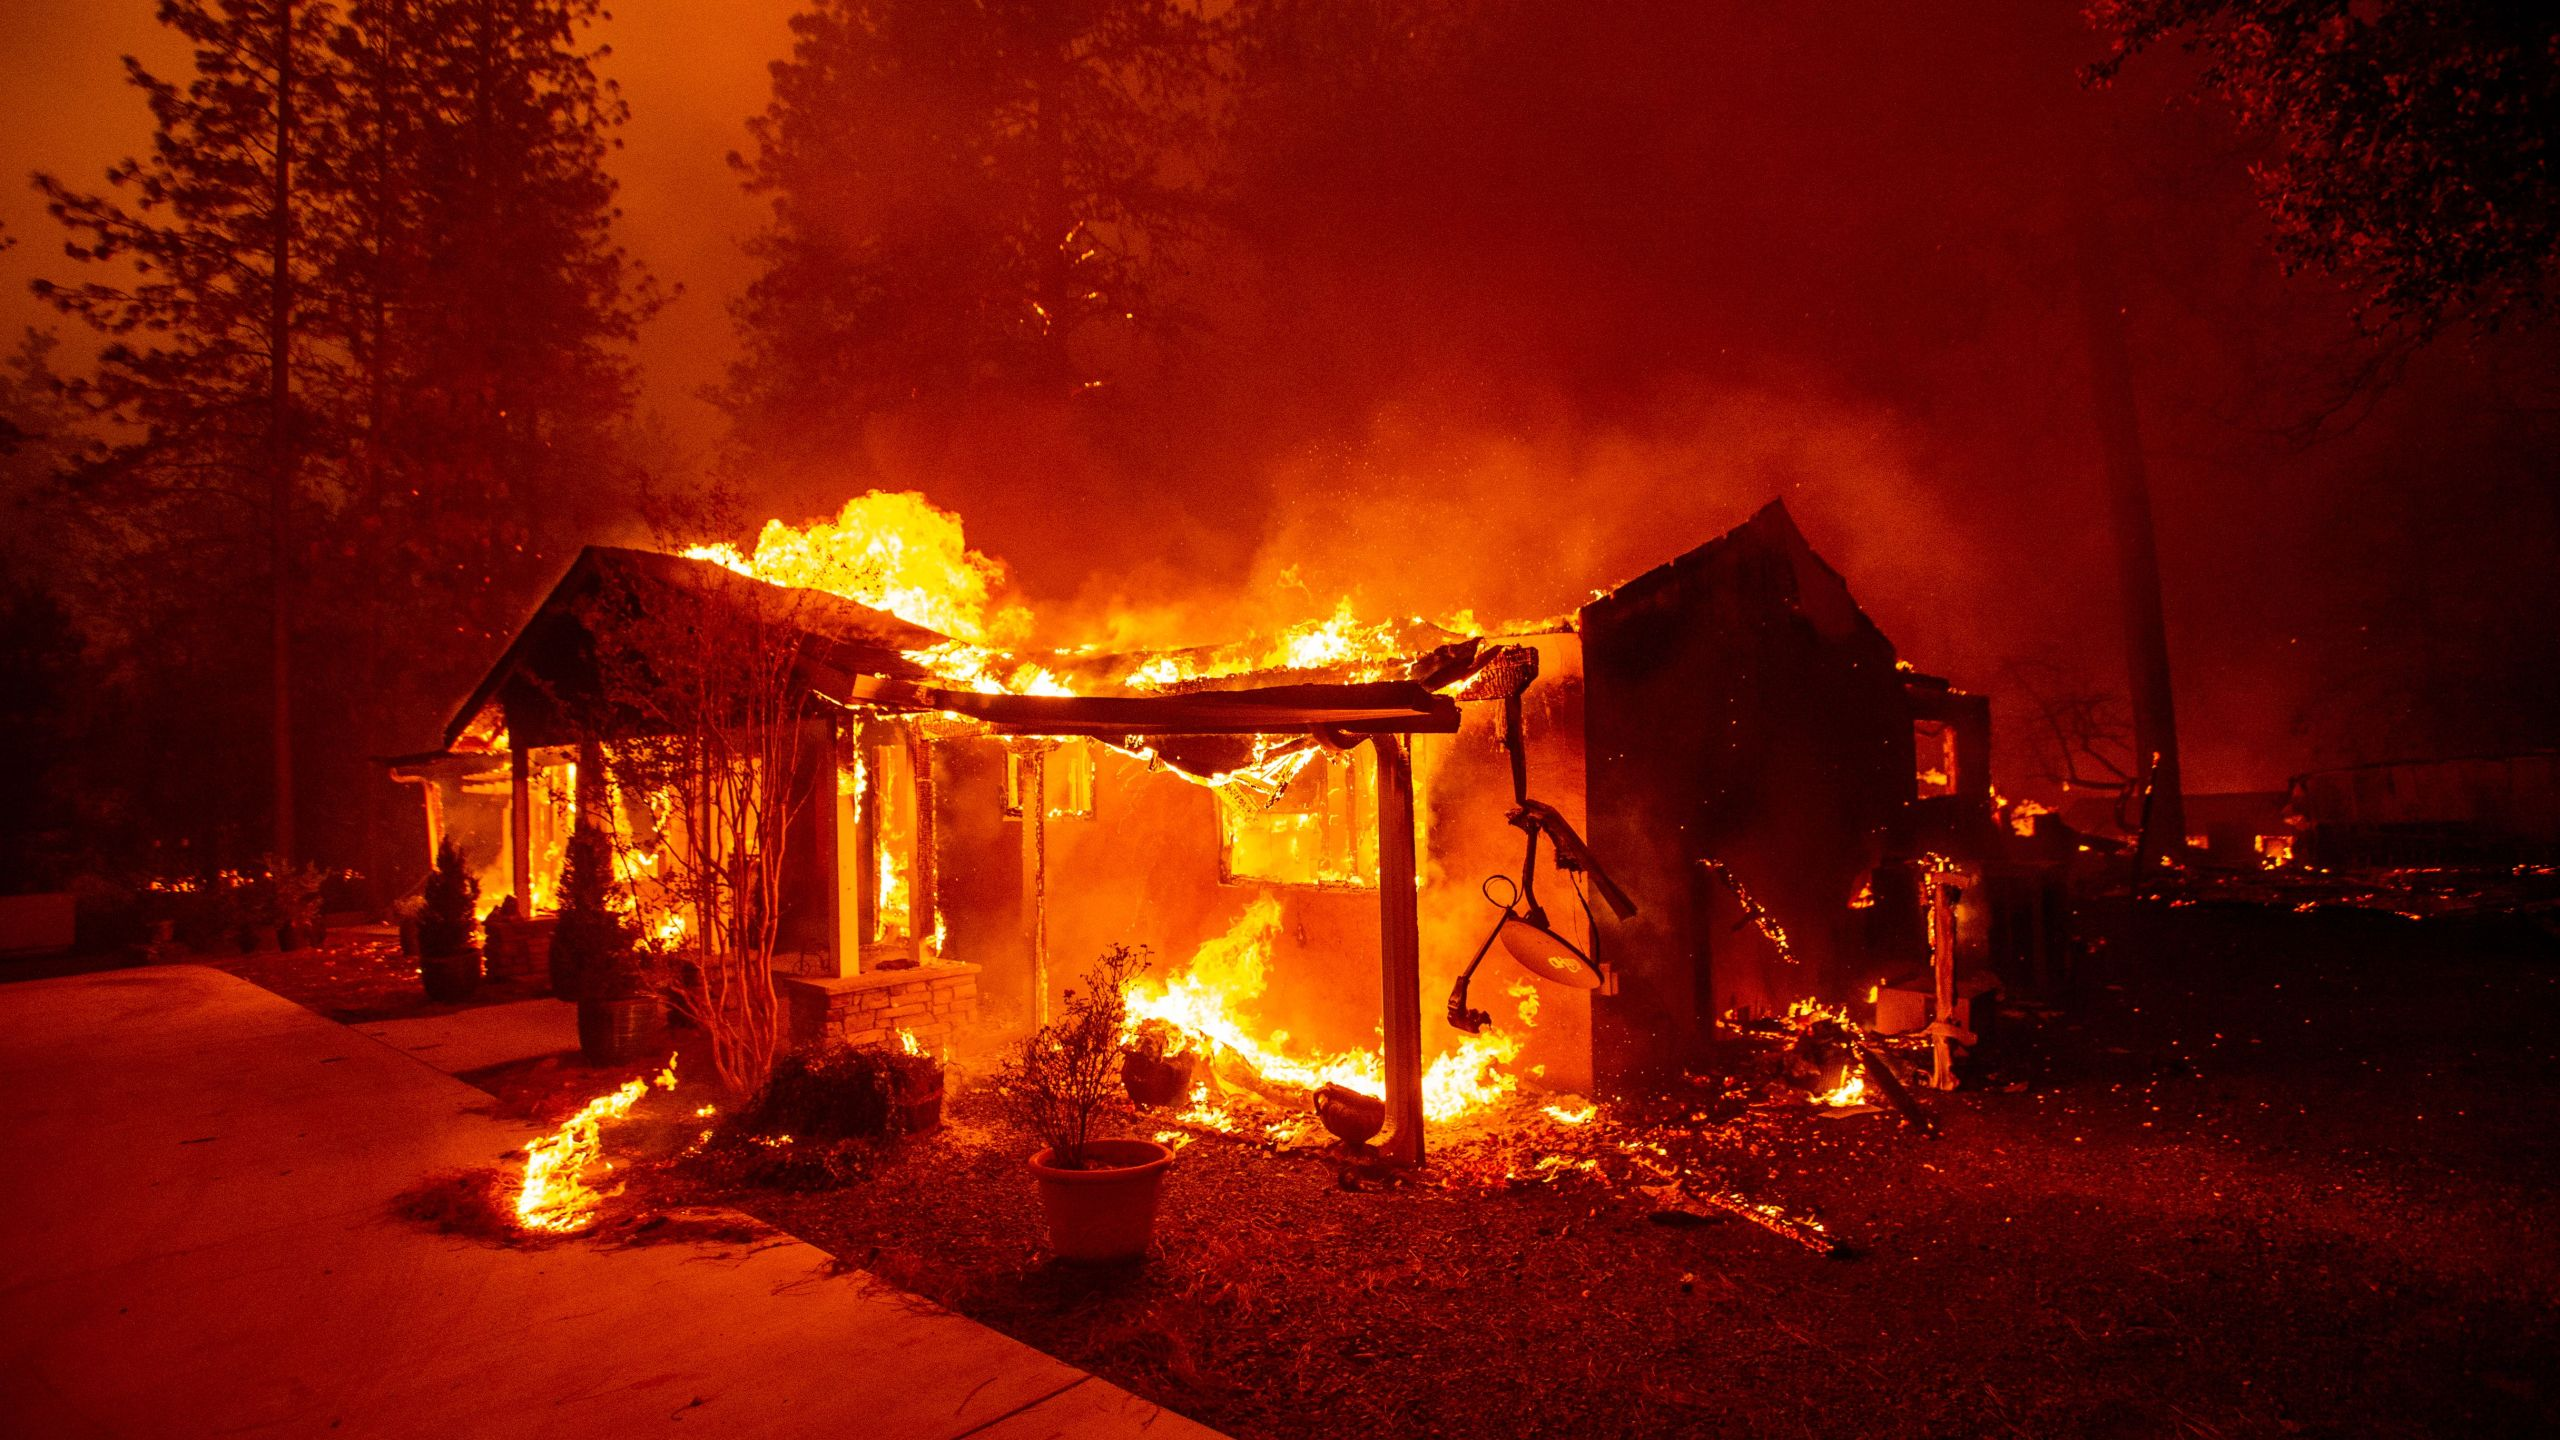 A home burns during the Camp fire in Paradise in Northern California on Nov. 8, 2018. (Credit: JOSH EDELSON/AFP/Getty Images)